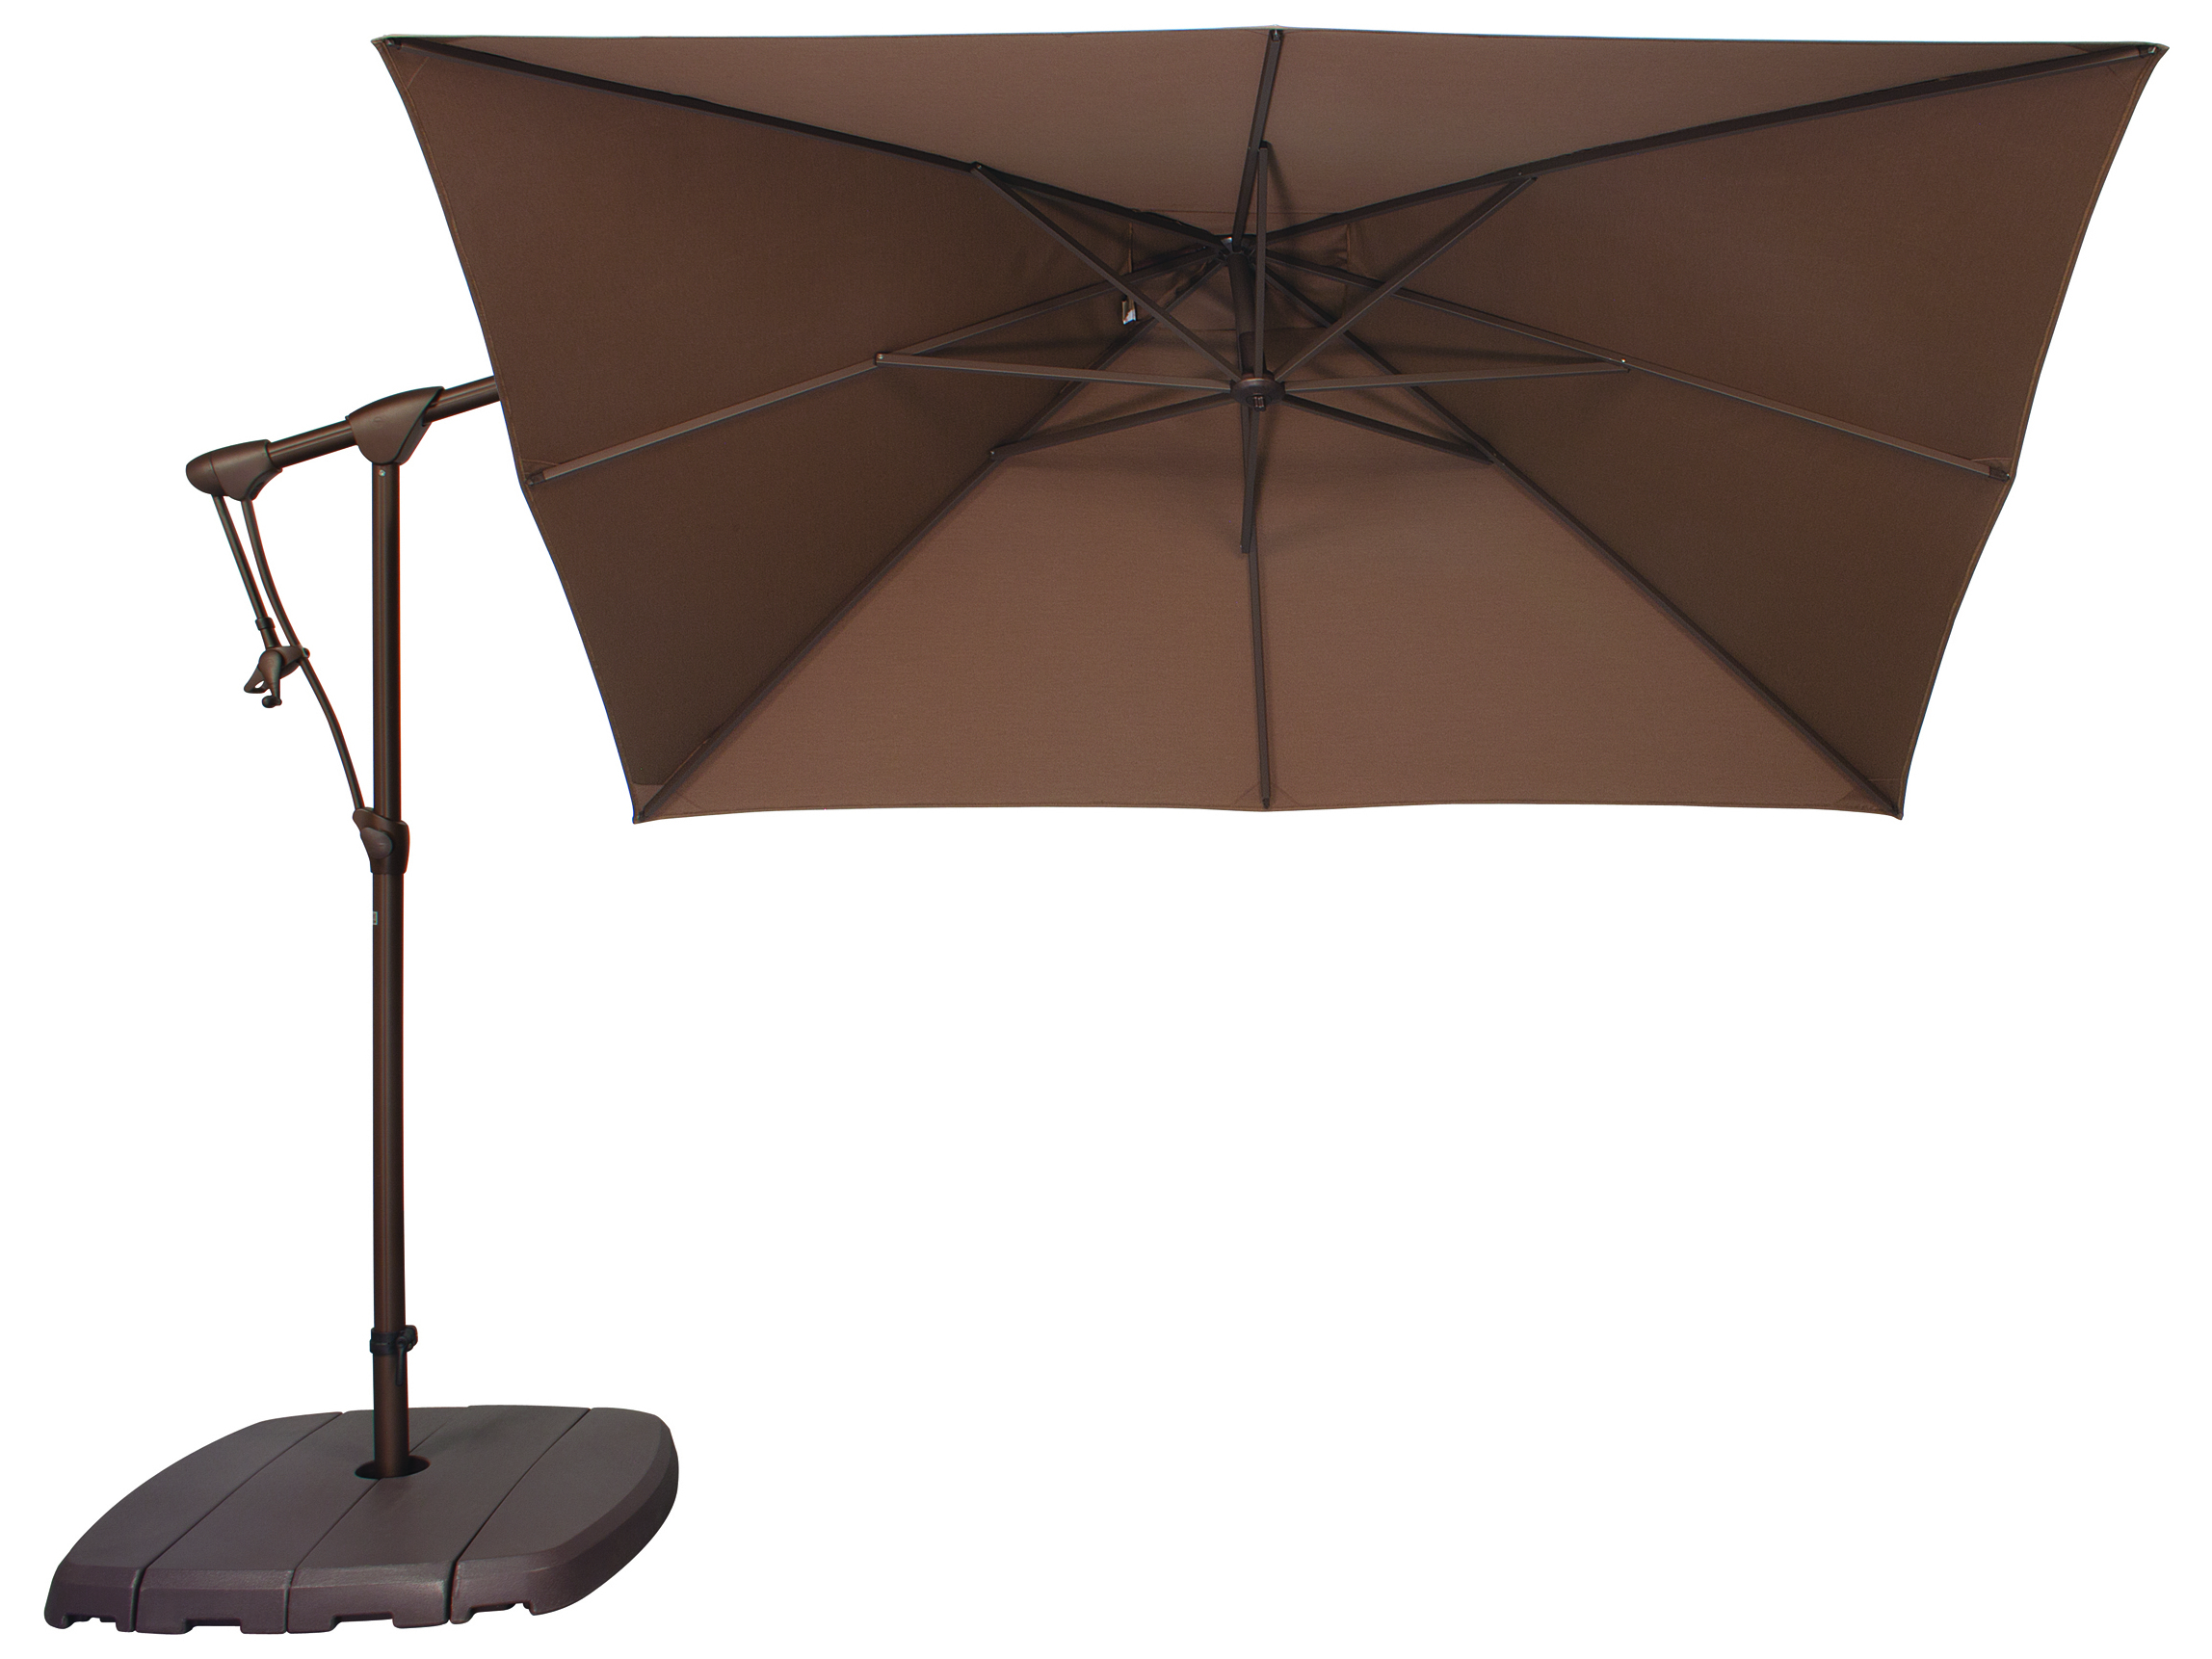 Treasure Garden Offset Umbrella | Patio Furniture with Umbrella | Garden Treasures Offset Umbrella